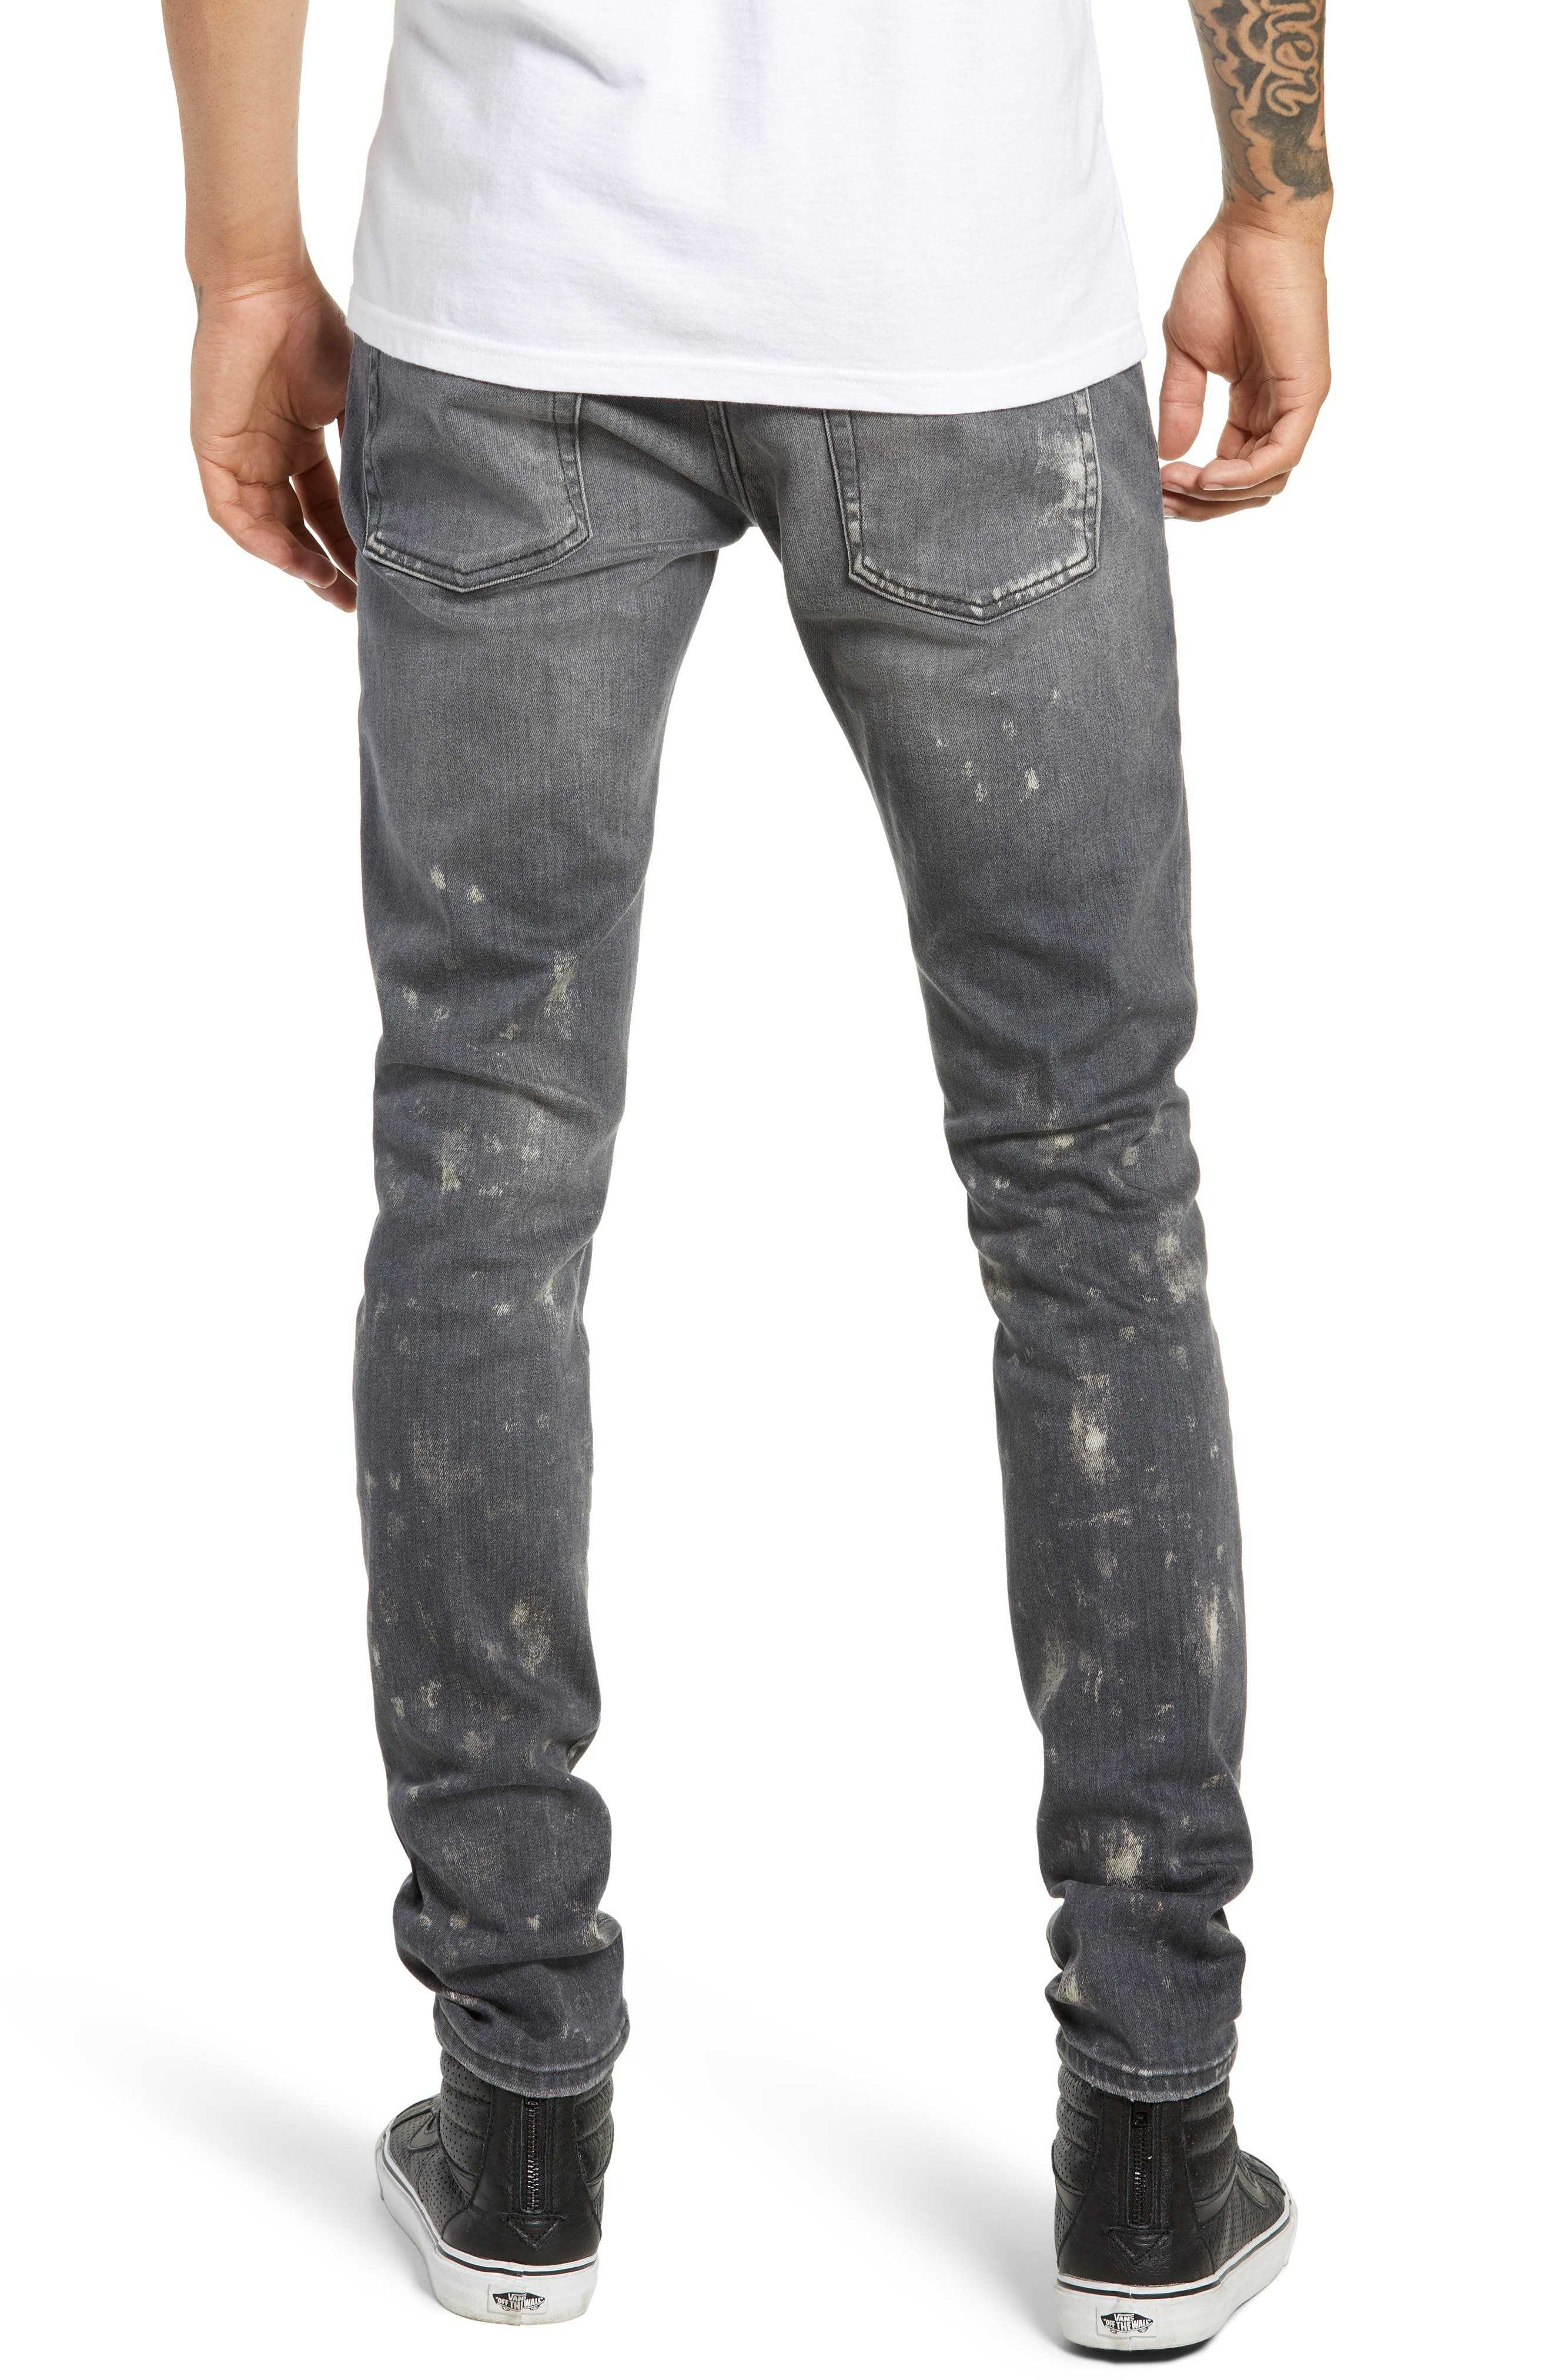 Destroyer Ripped Slim Fit Jeans,                             Alternate thumbnail 2, color,                             GREY STONE